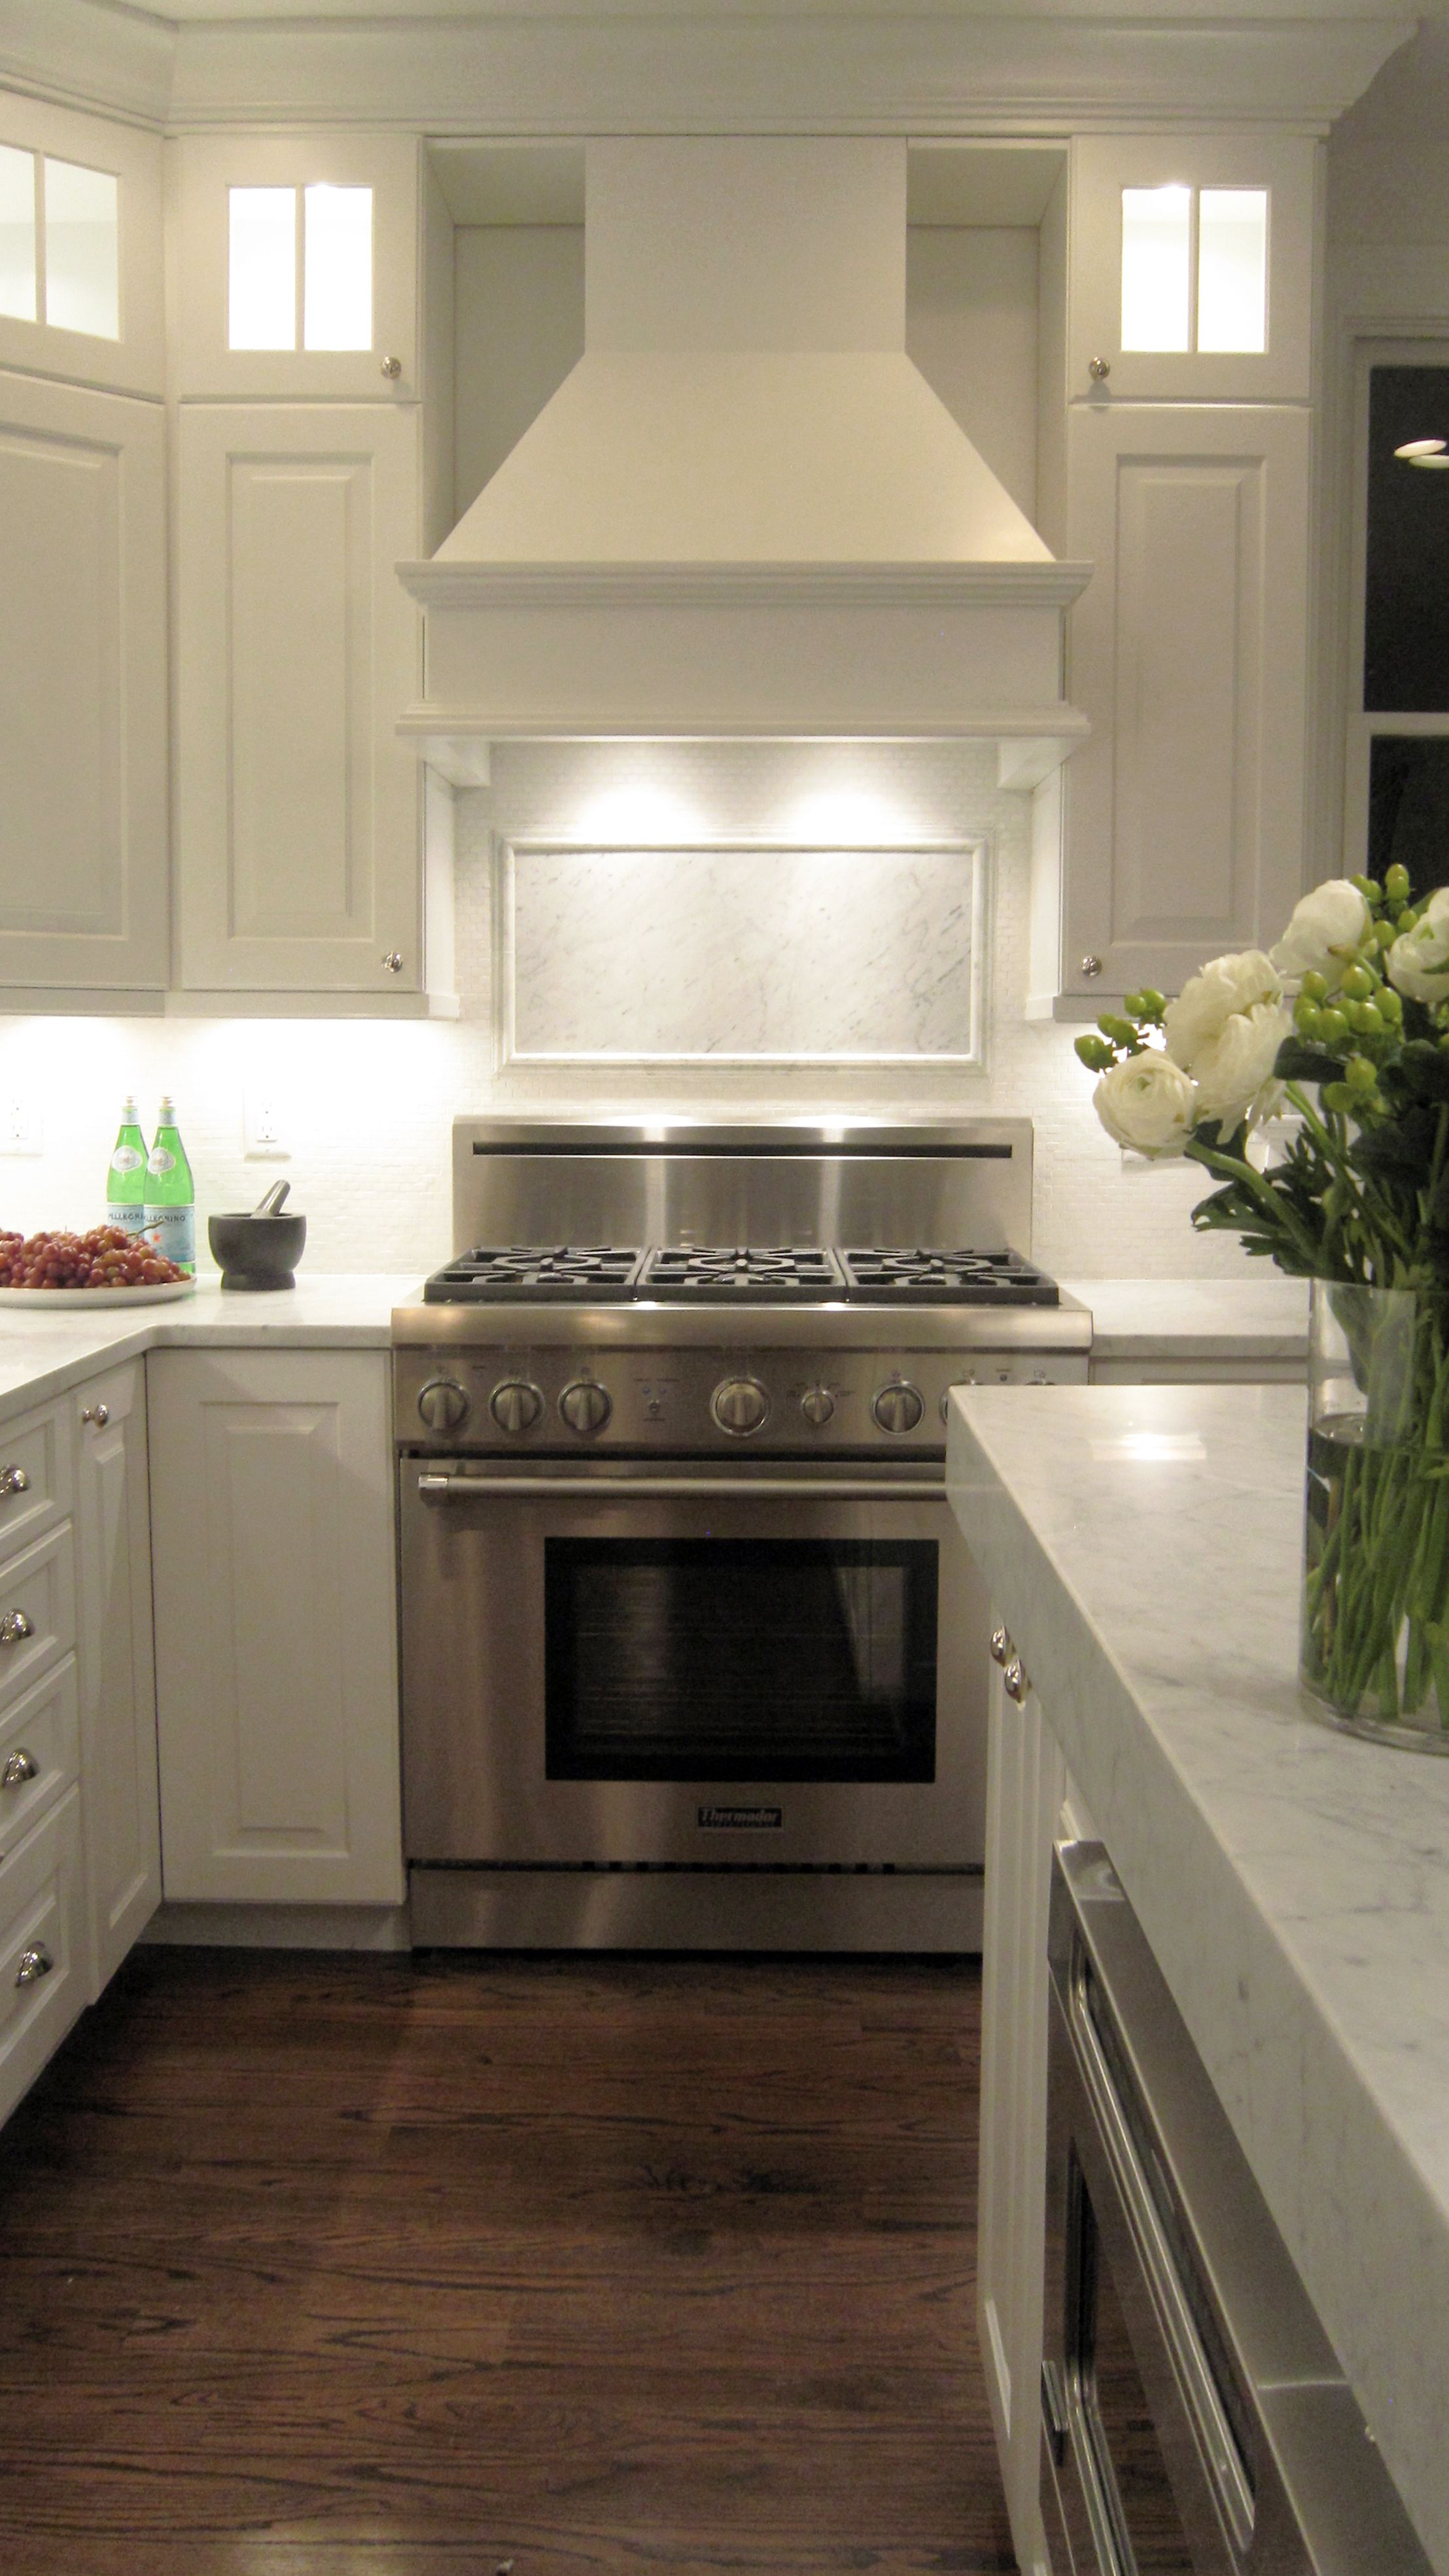 countertops carrara featured ceiling and of marble image kitchen countertop features vaulted beautiful